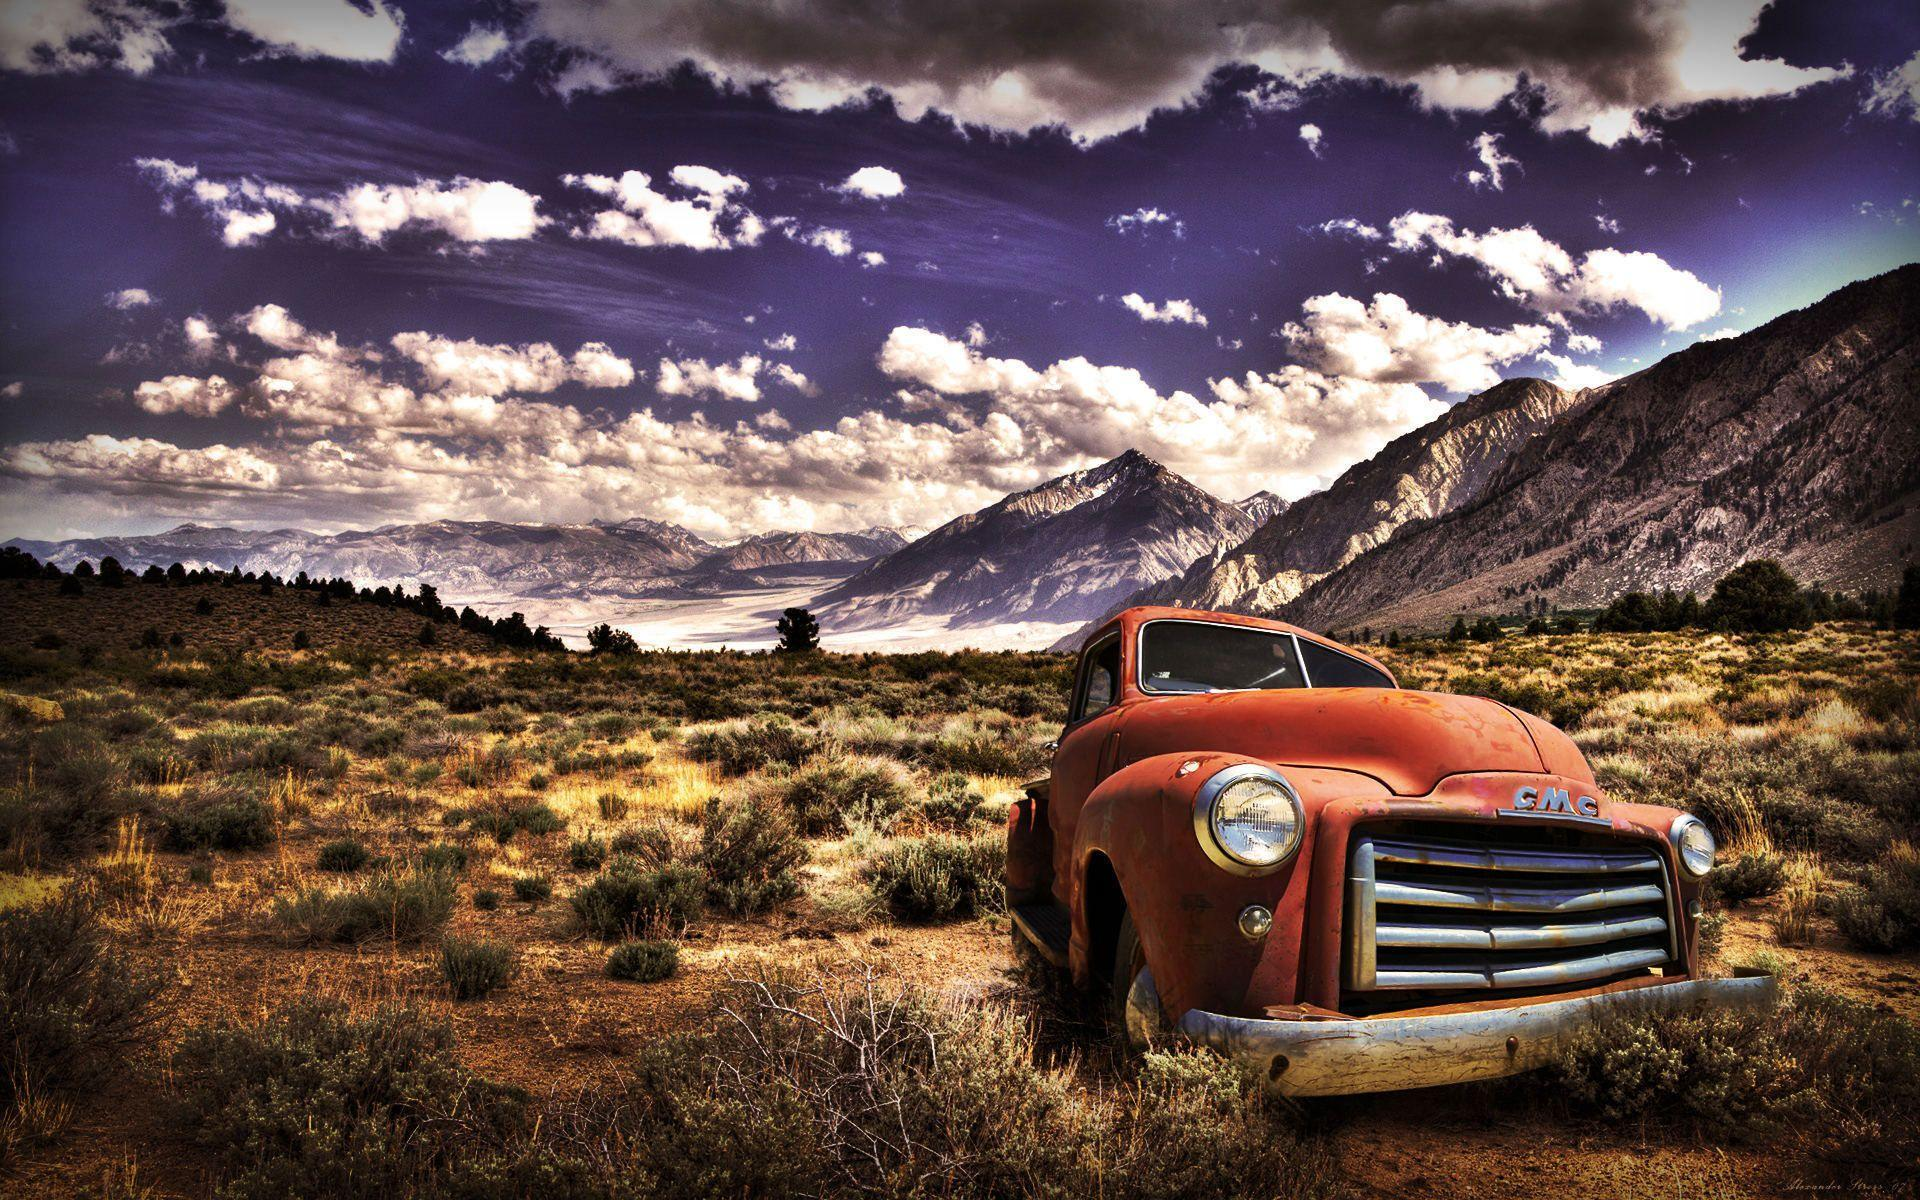 Old Chevy Truck Wallpapers Top Free Old Chevy Truck Backgrounds Wallpaperaccess